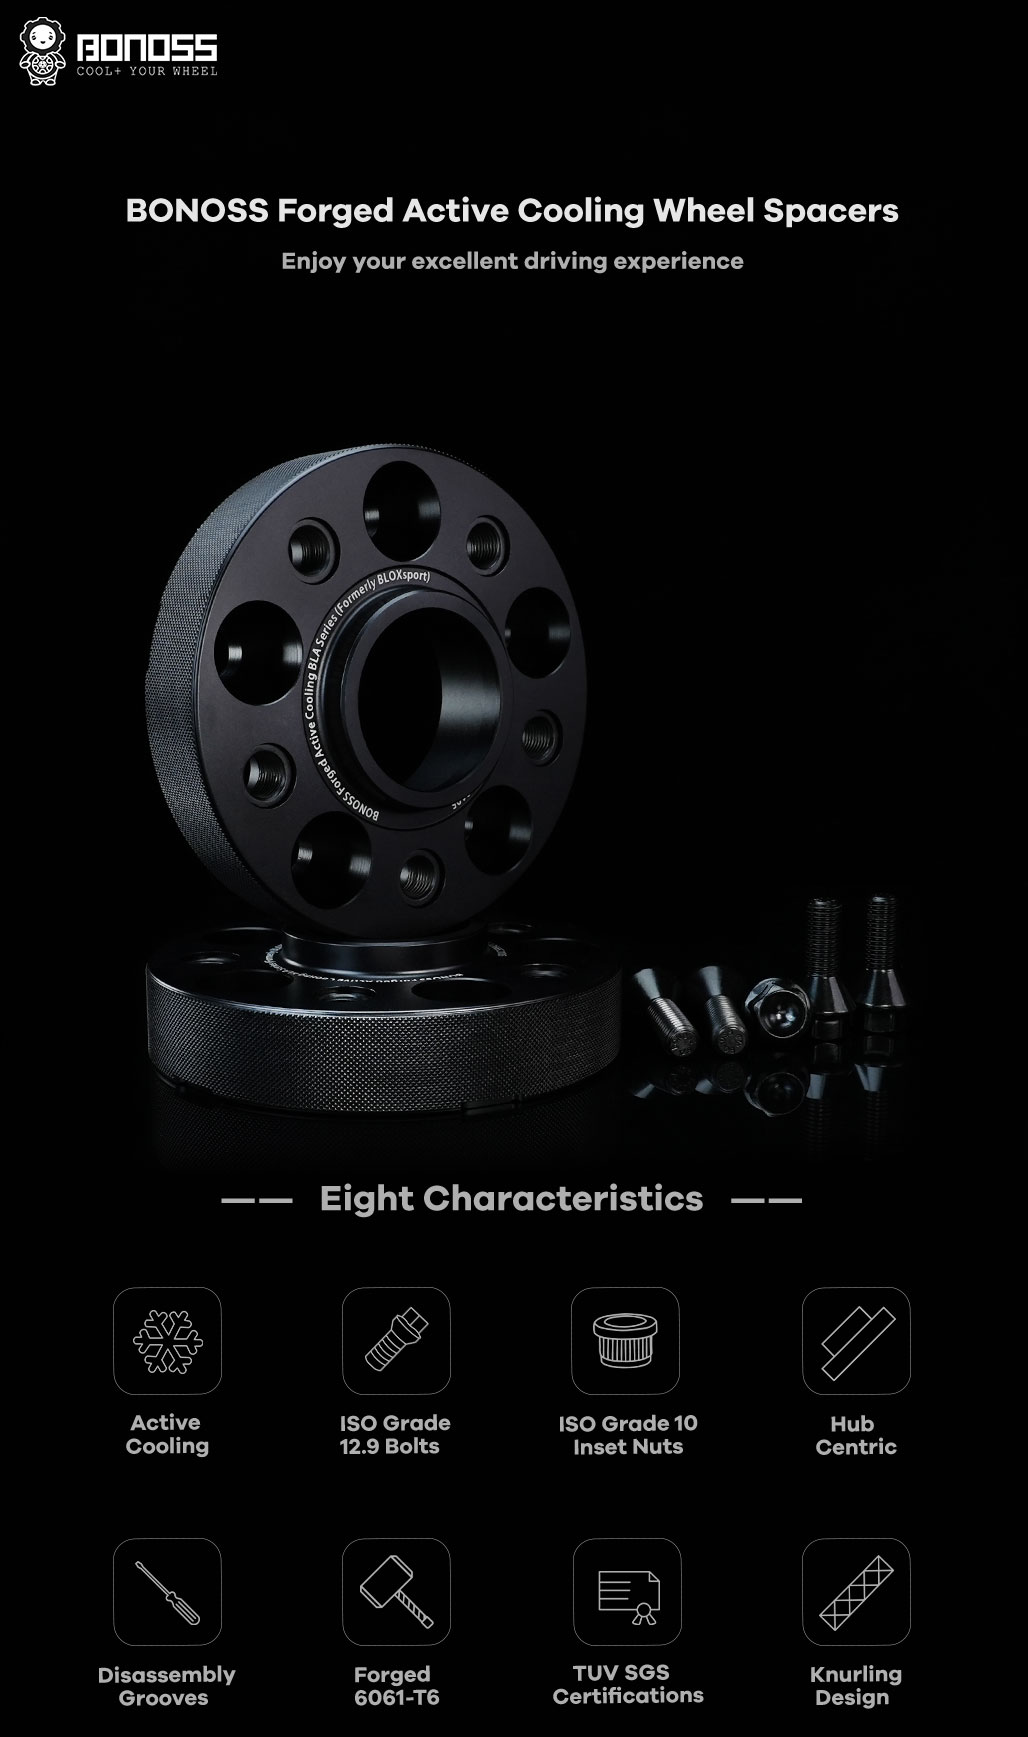 BONOSS-forged-lightweight-plus-wheel-spacer-for-Mercedes-Benz-W168-5x112-66.5-12x1.5-6061t6-by-grace-1